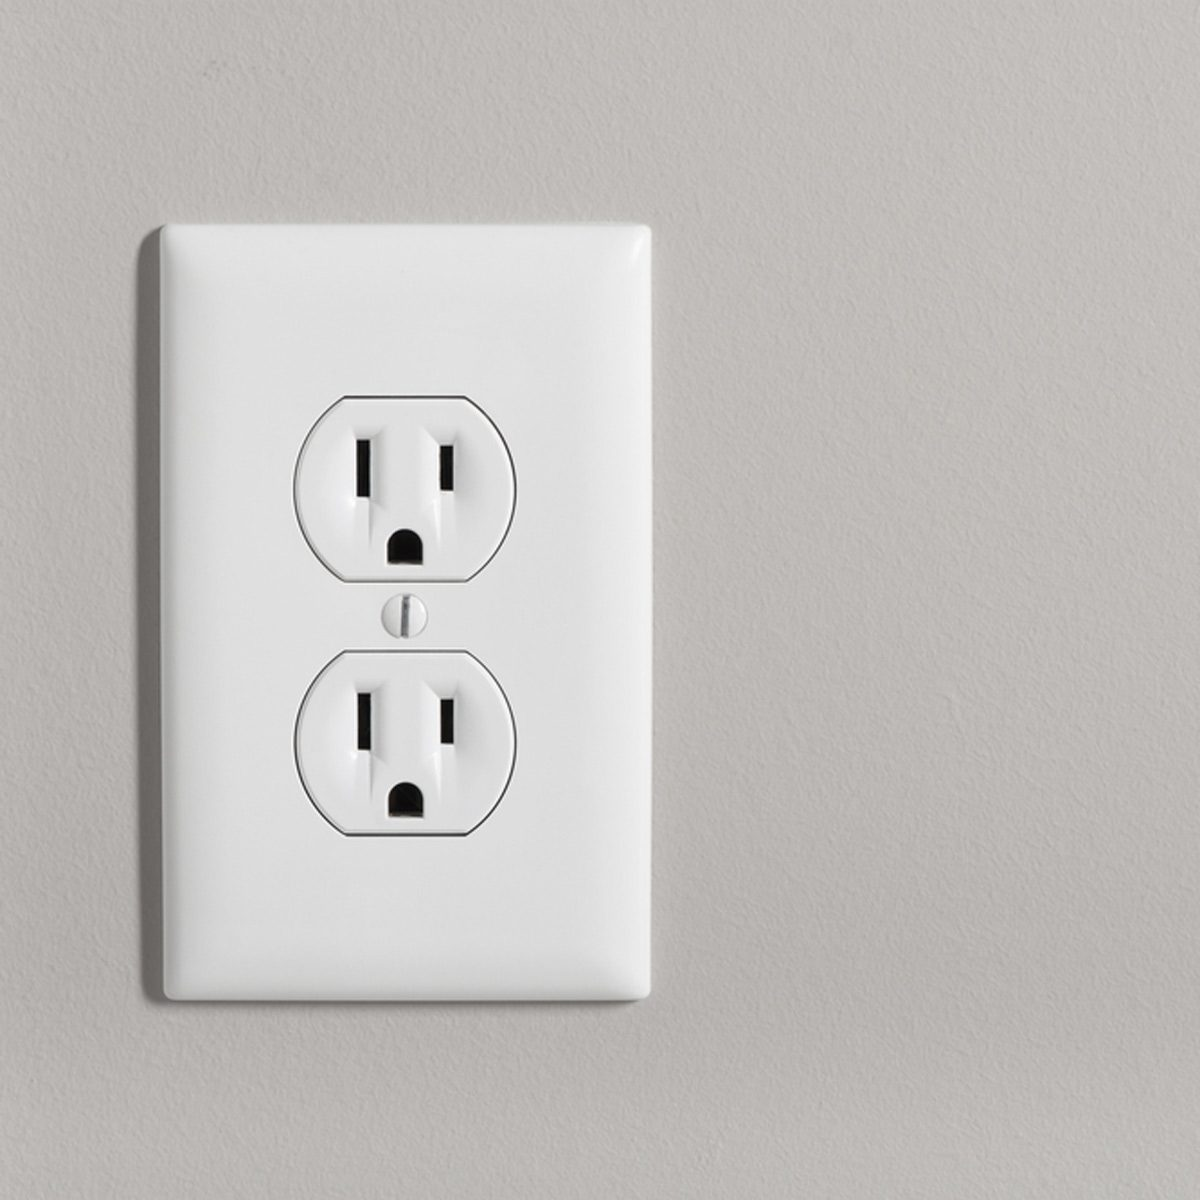 Plug Directly into an Outlet